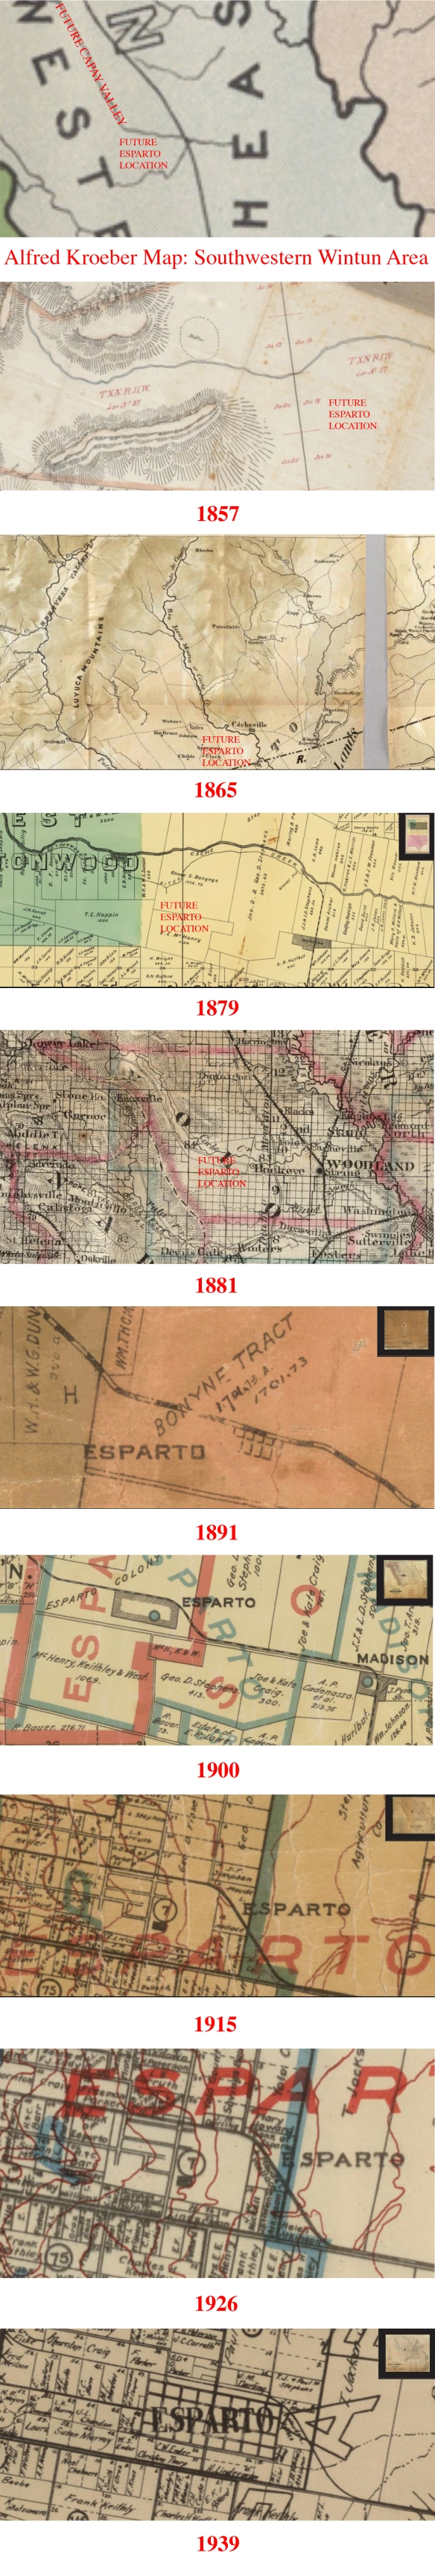 A History of Esparto/Capay in Maps